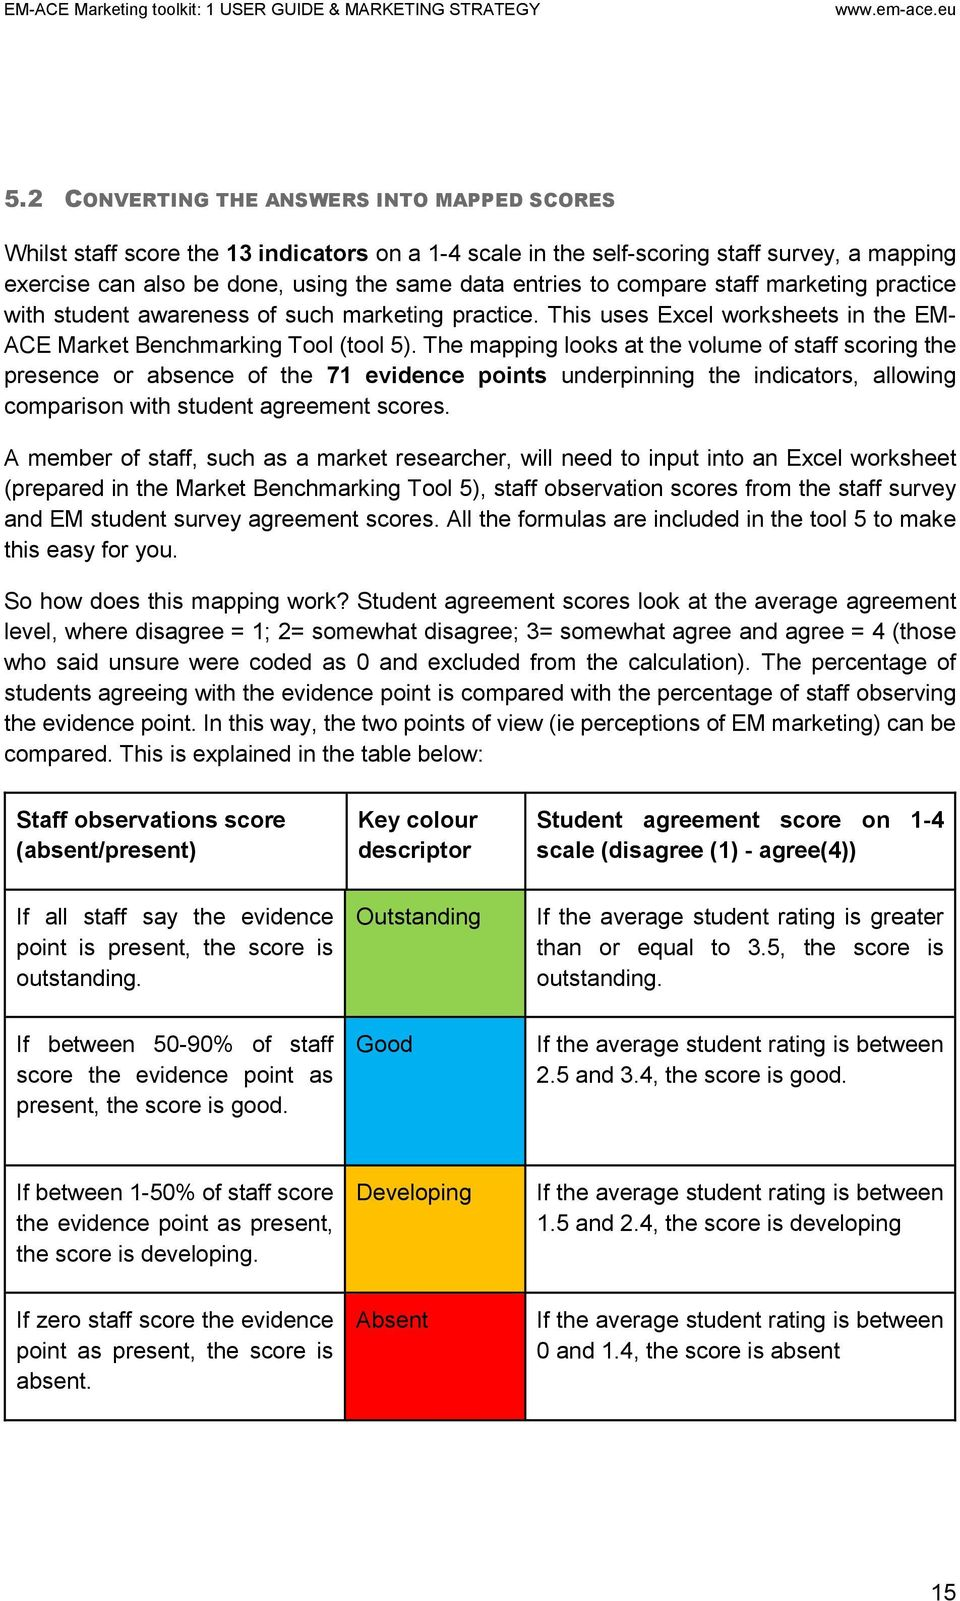 The mapping looks at the volume of staff scoring the presence or absence of the 71 evidence points underpinning the indicators, allowing comparison with student agreement scores.